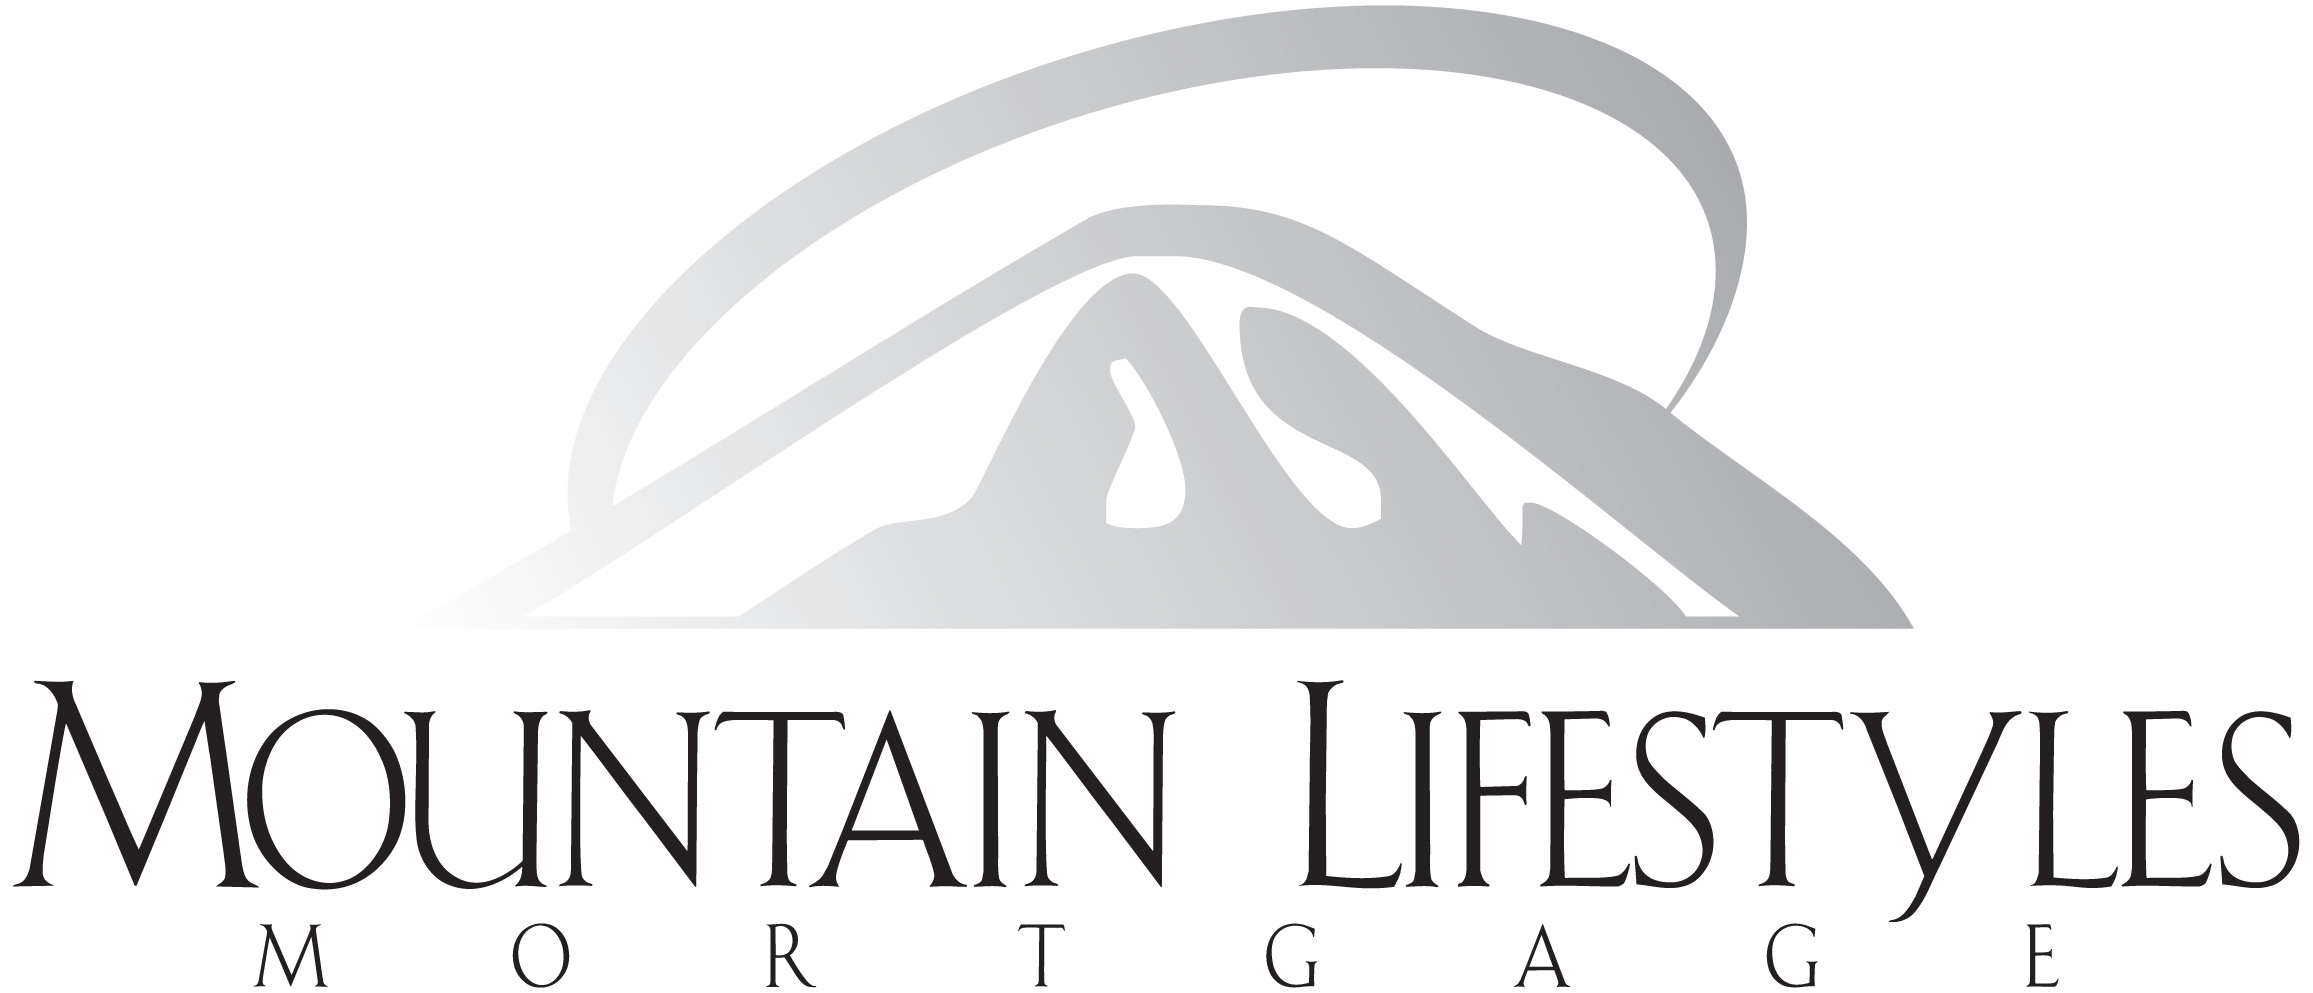 MOUNTAIN LIFESTYLES MORTGAGE